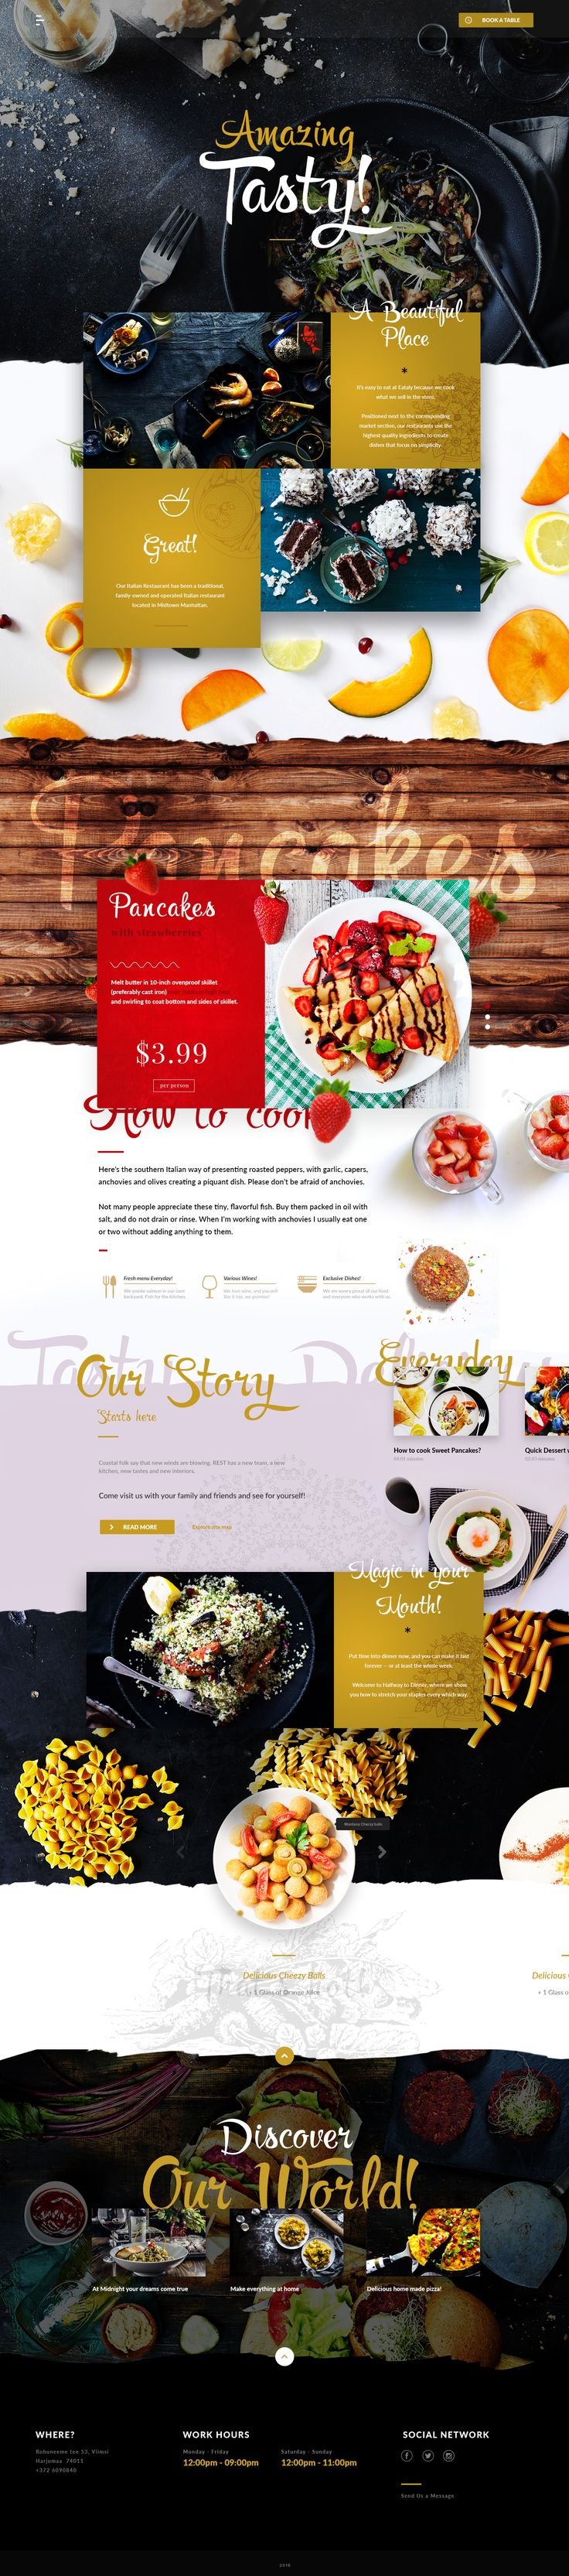 Great Website Design Ideas new hampshire great website design ideas fitness club web design Food Restaurant By Vitali Zakharoff Restaurant 2restaurant Website Designweb